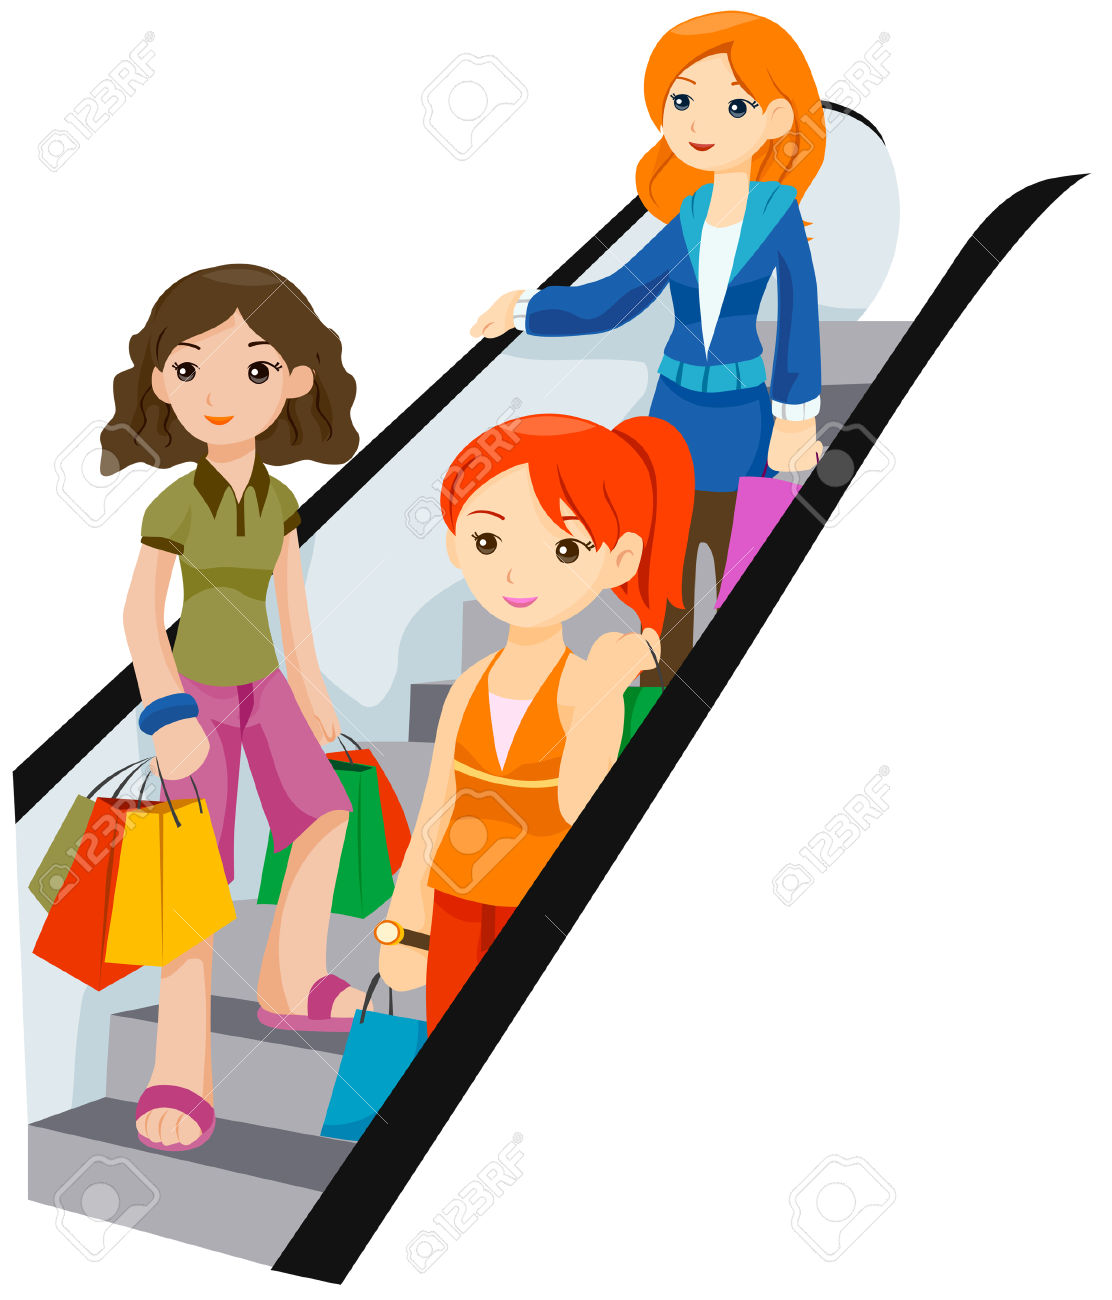 Escalators clipart svg download Collection of Escalator clipart | Free download best Escalator ... svg download